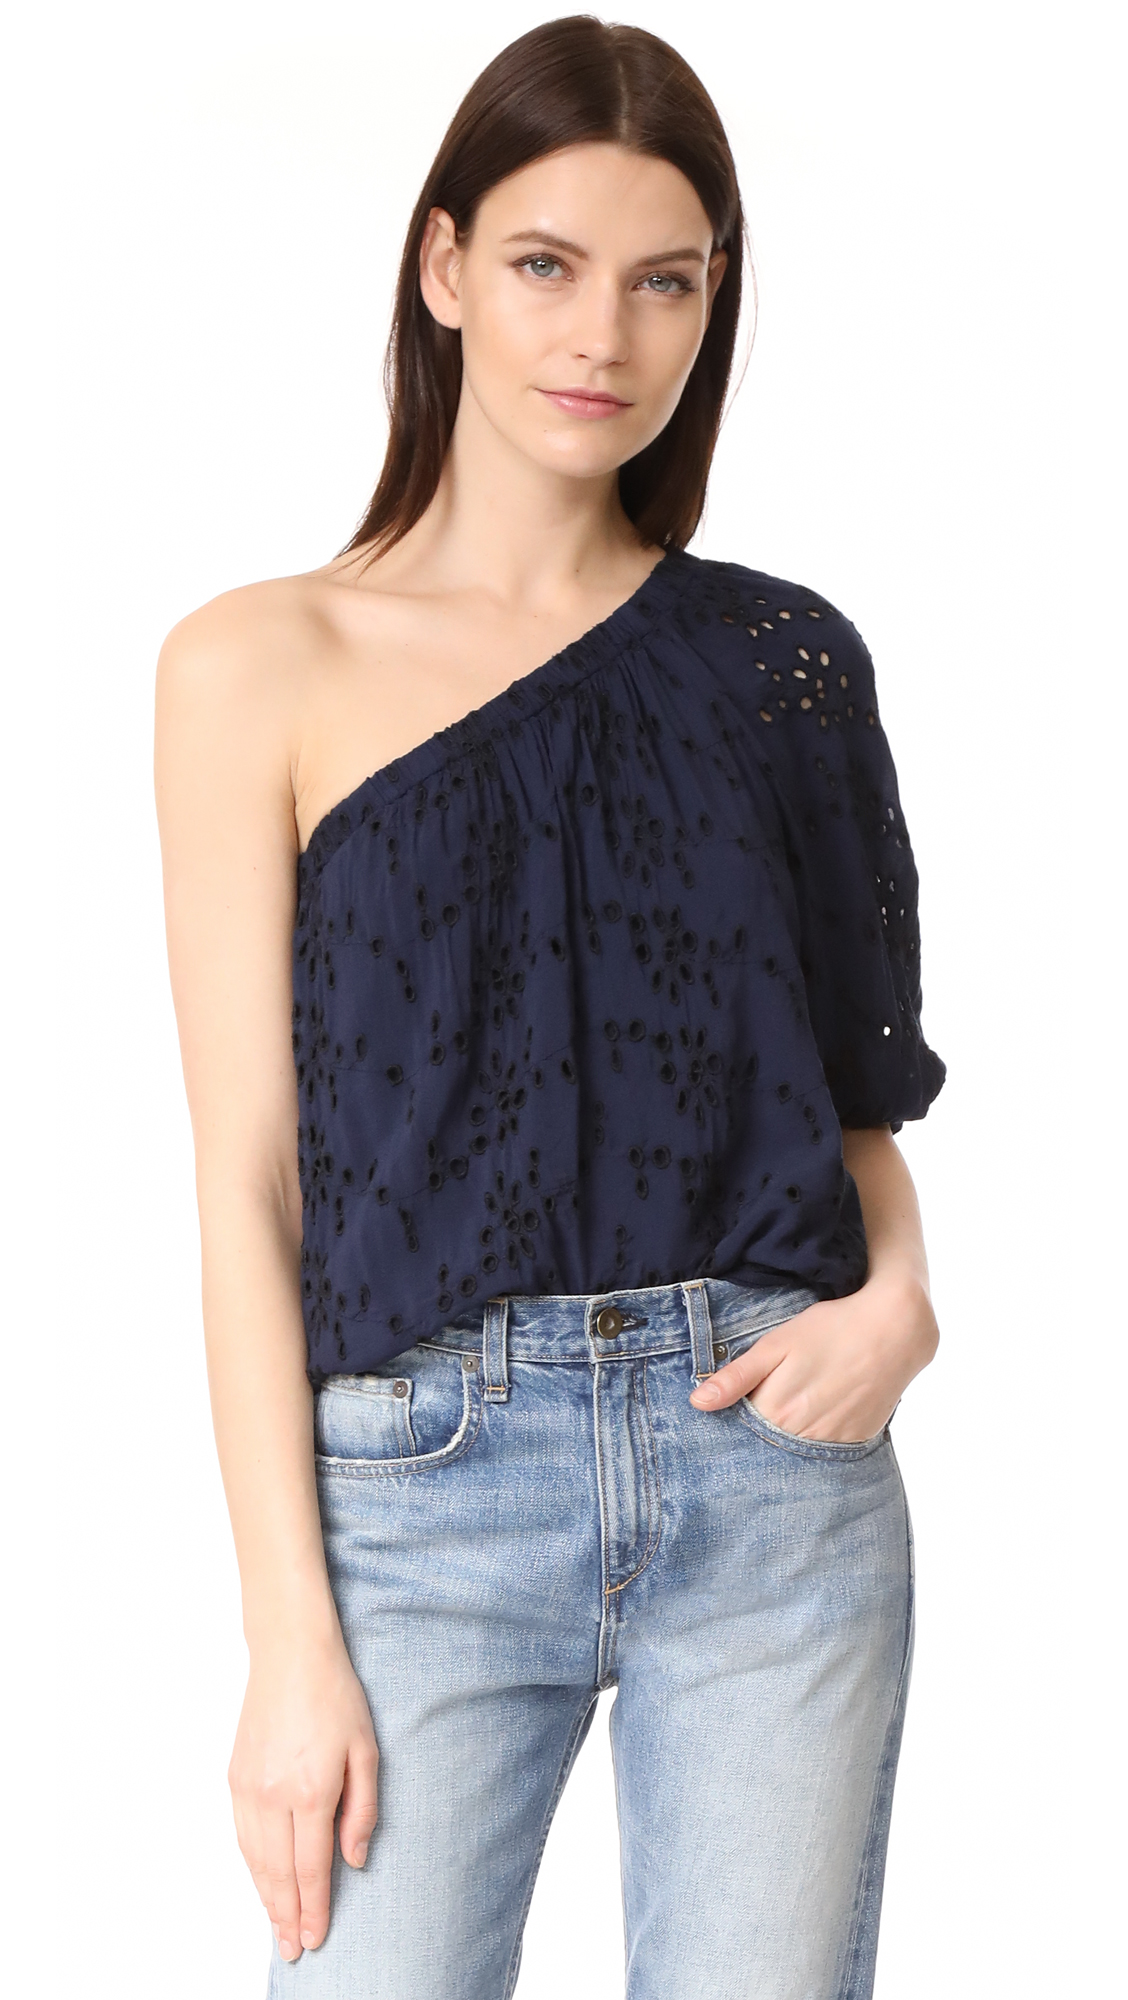 Velvet Maya Blouse - Navy/Black